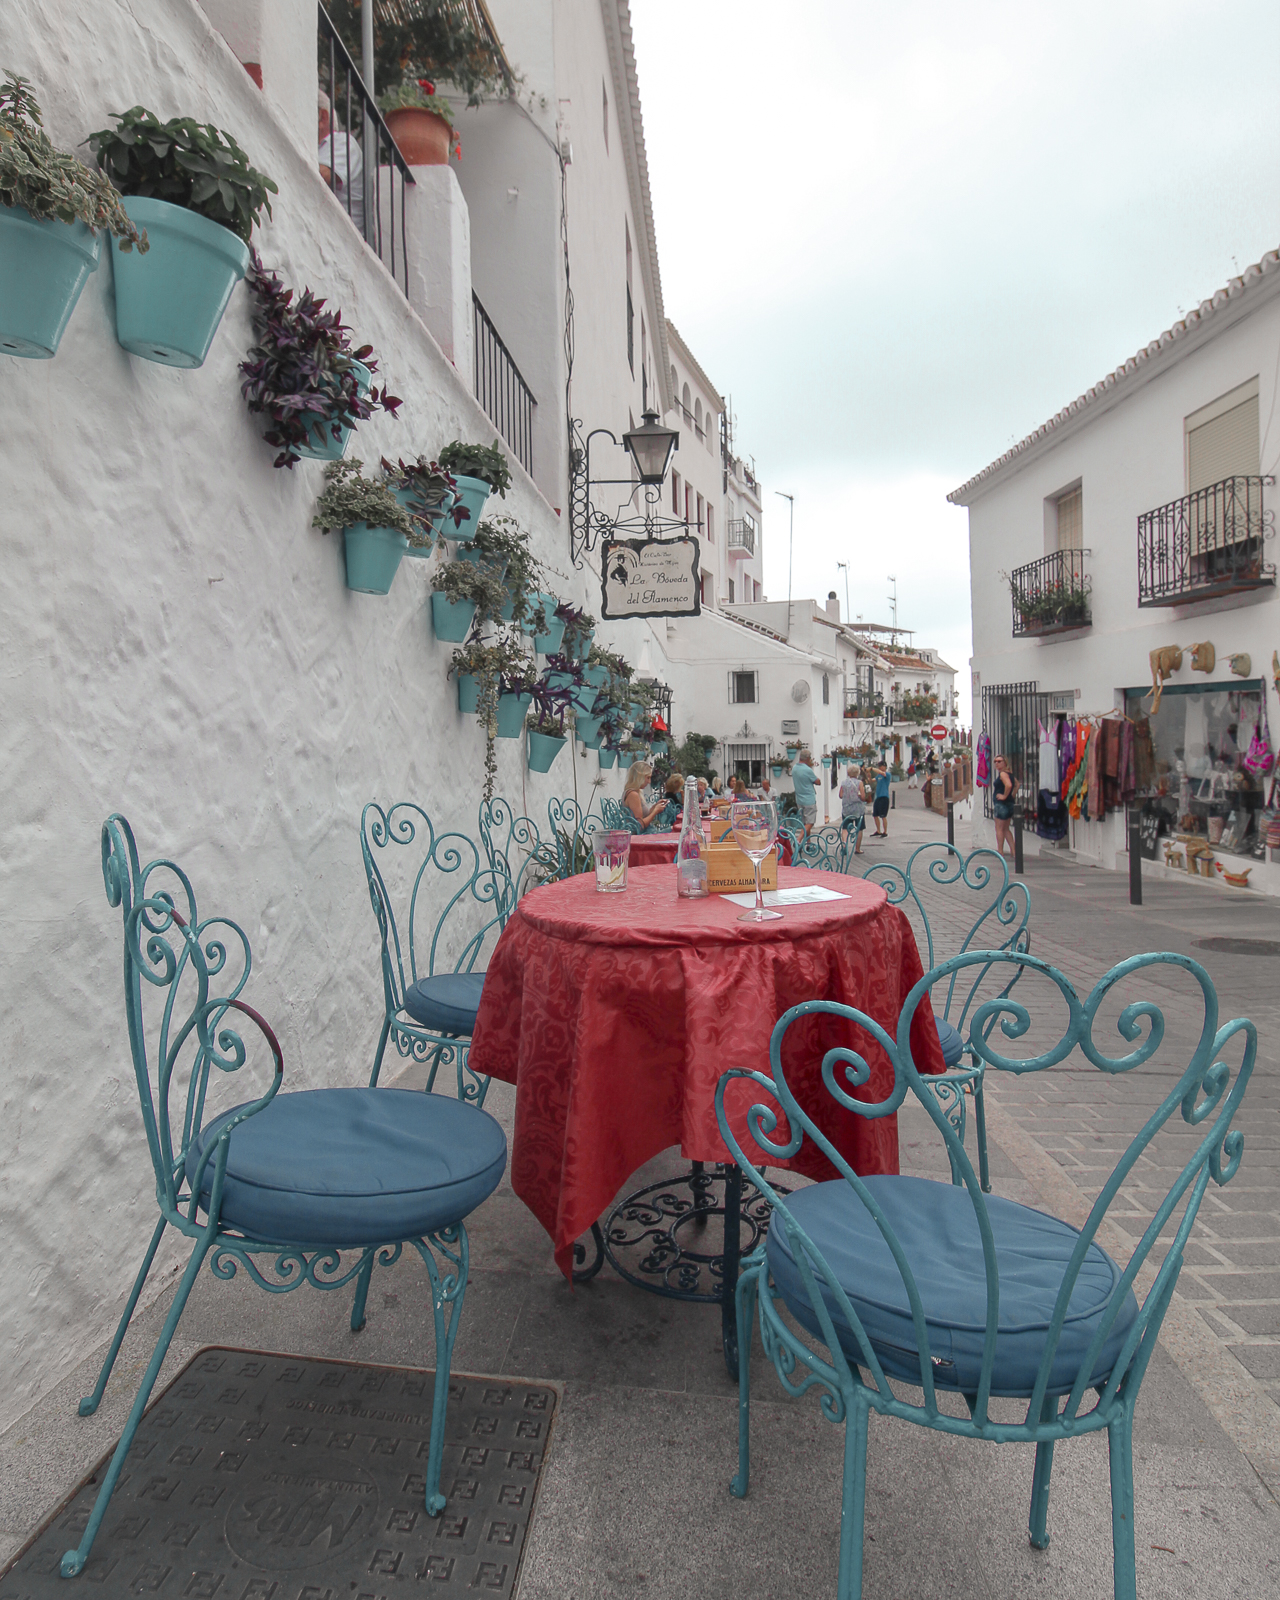 Cafes and Cappuccinos - The white clad buildings were consistent throughout the entire town. With endless terraces, cafes and potted plants. I could have spent all day just people watching and sipping an espresso!